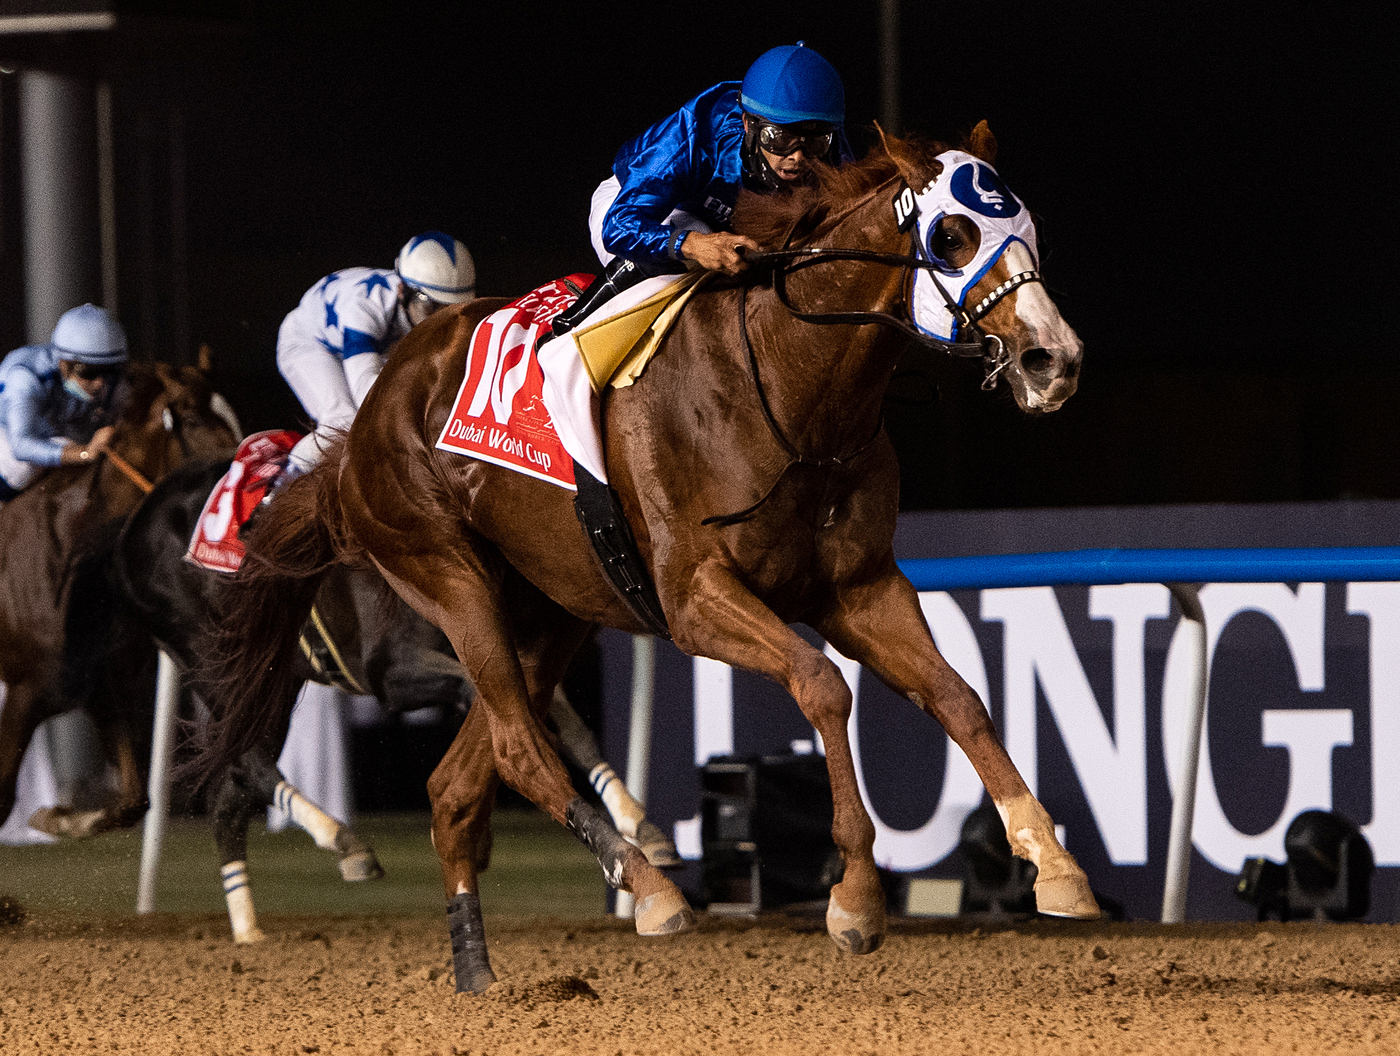 Longines Flat Racing Event: Longines times the victory of Mystic Guide in the 25th Dubai World Cup 3